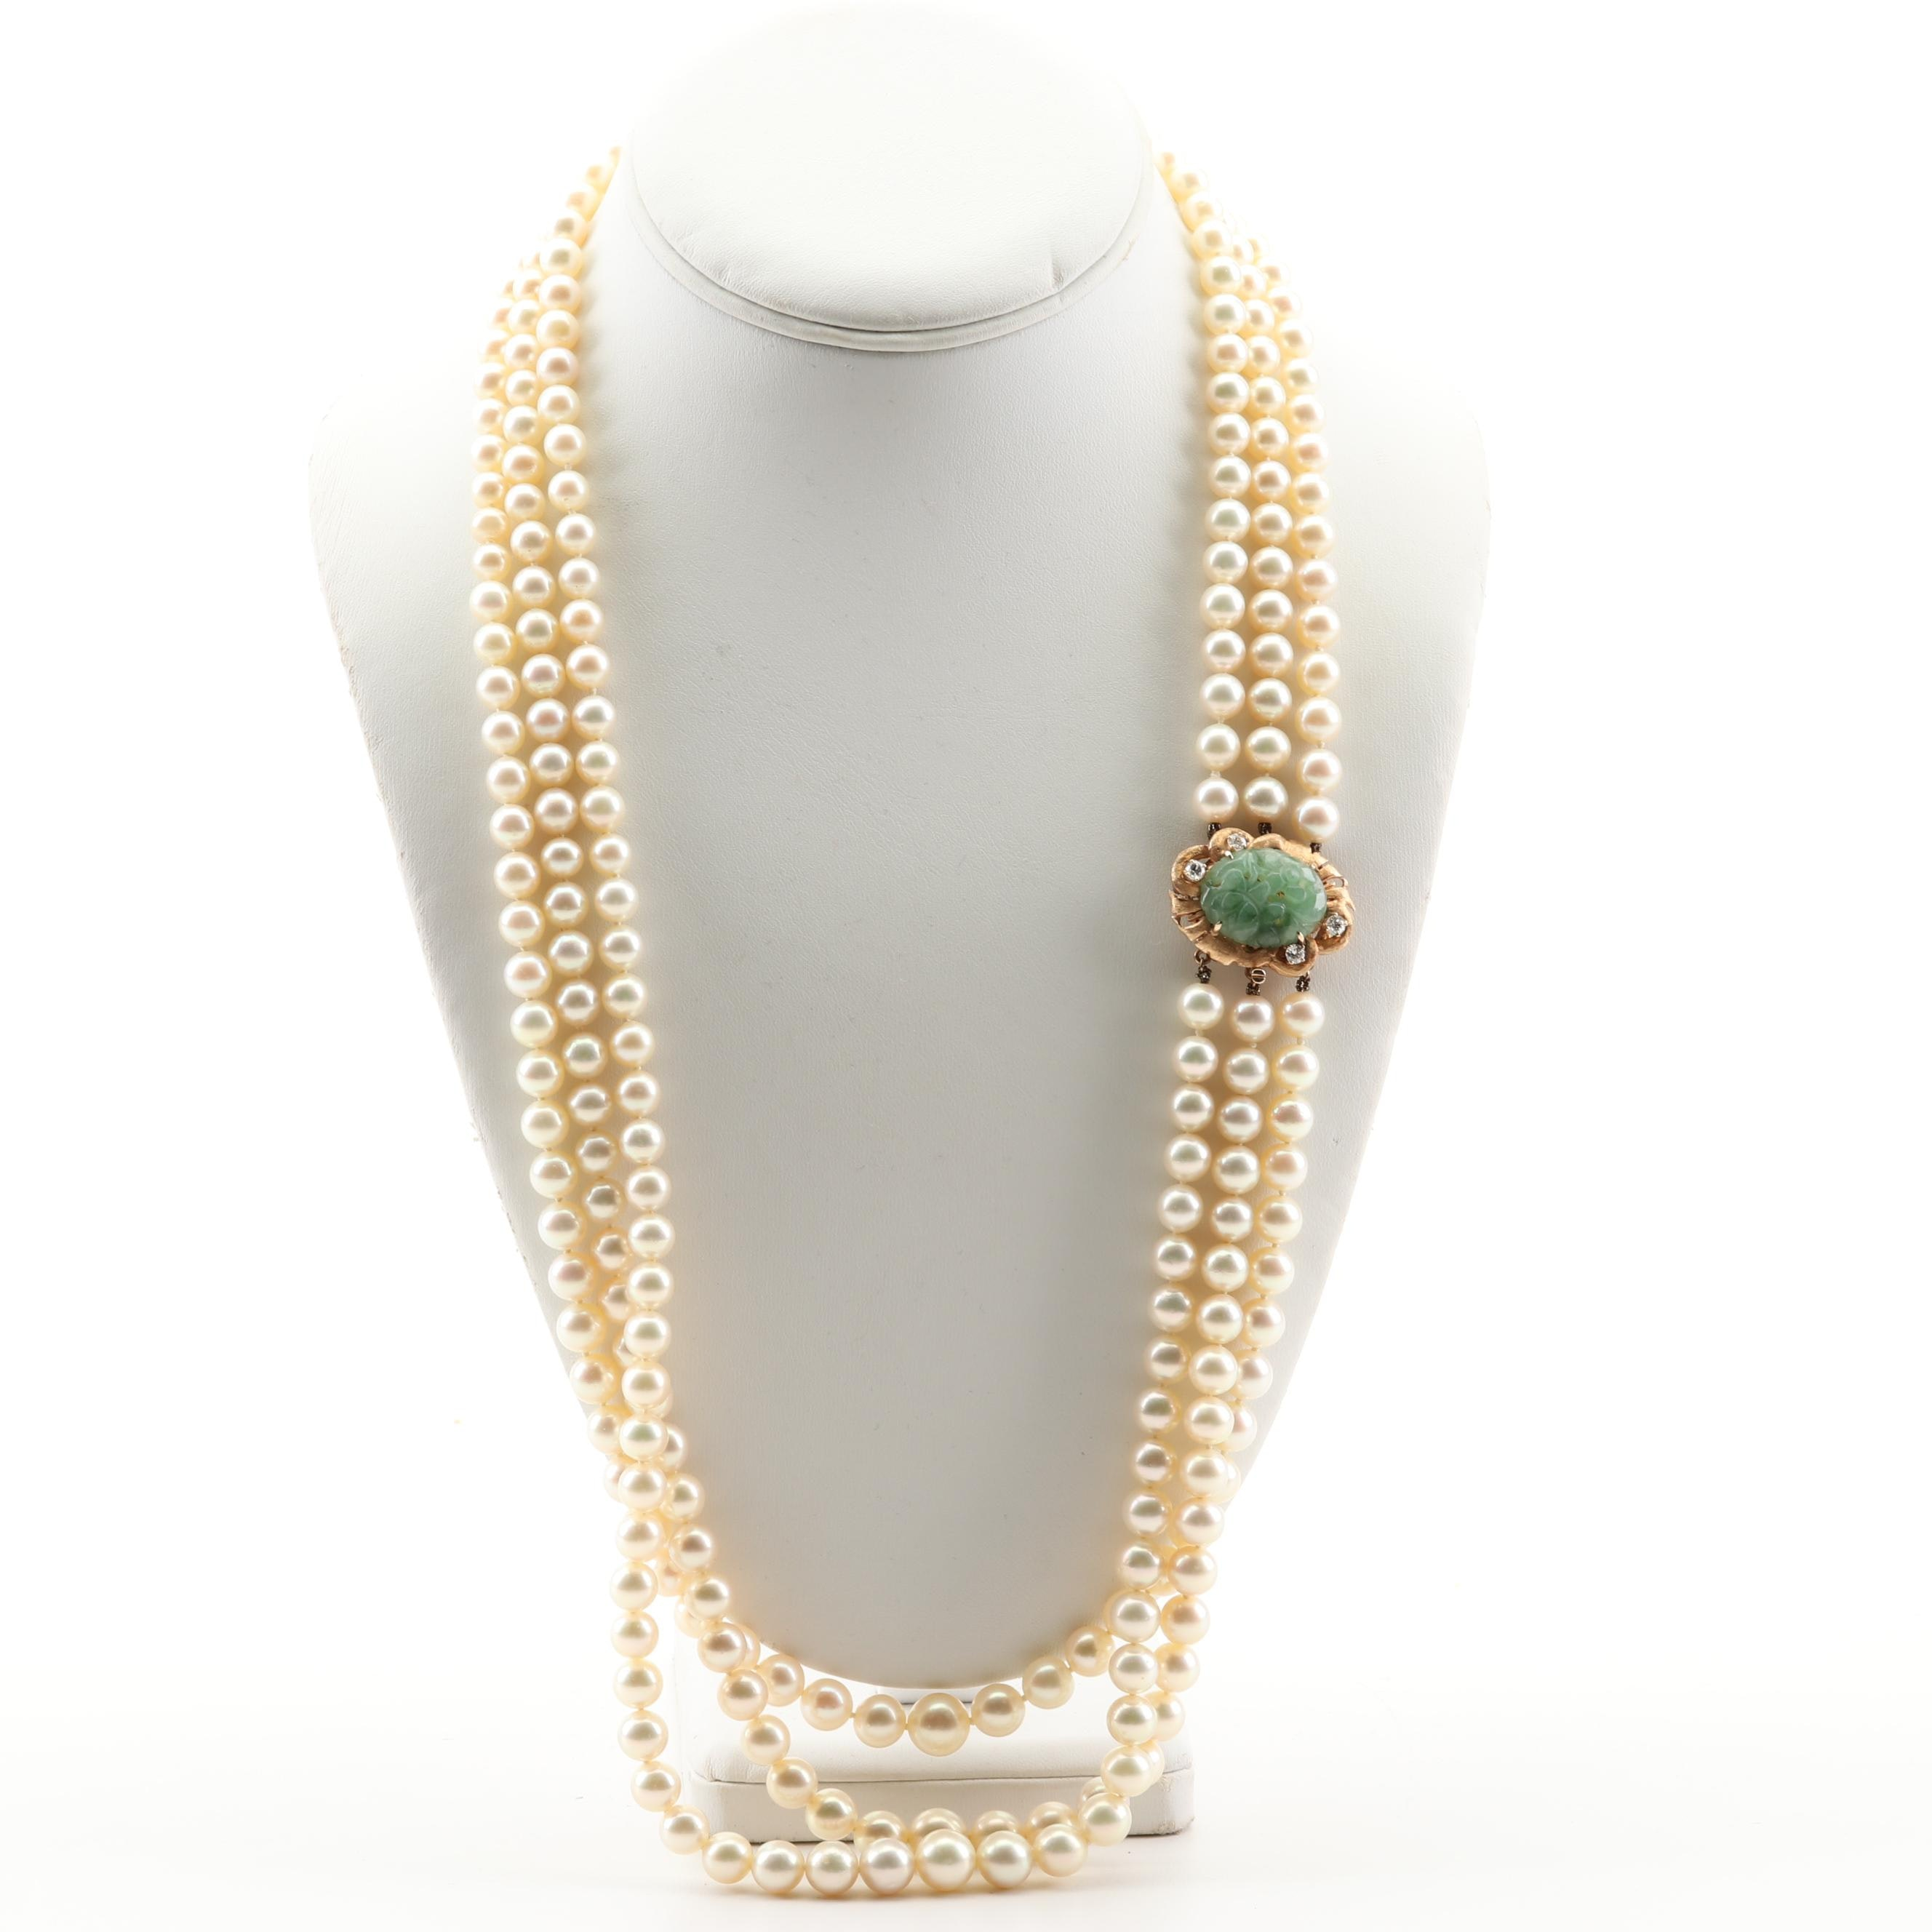 14K Yellow Gold Freshwater Pearl, Jadeite and Diamond Necklace